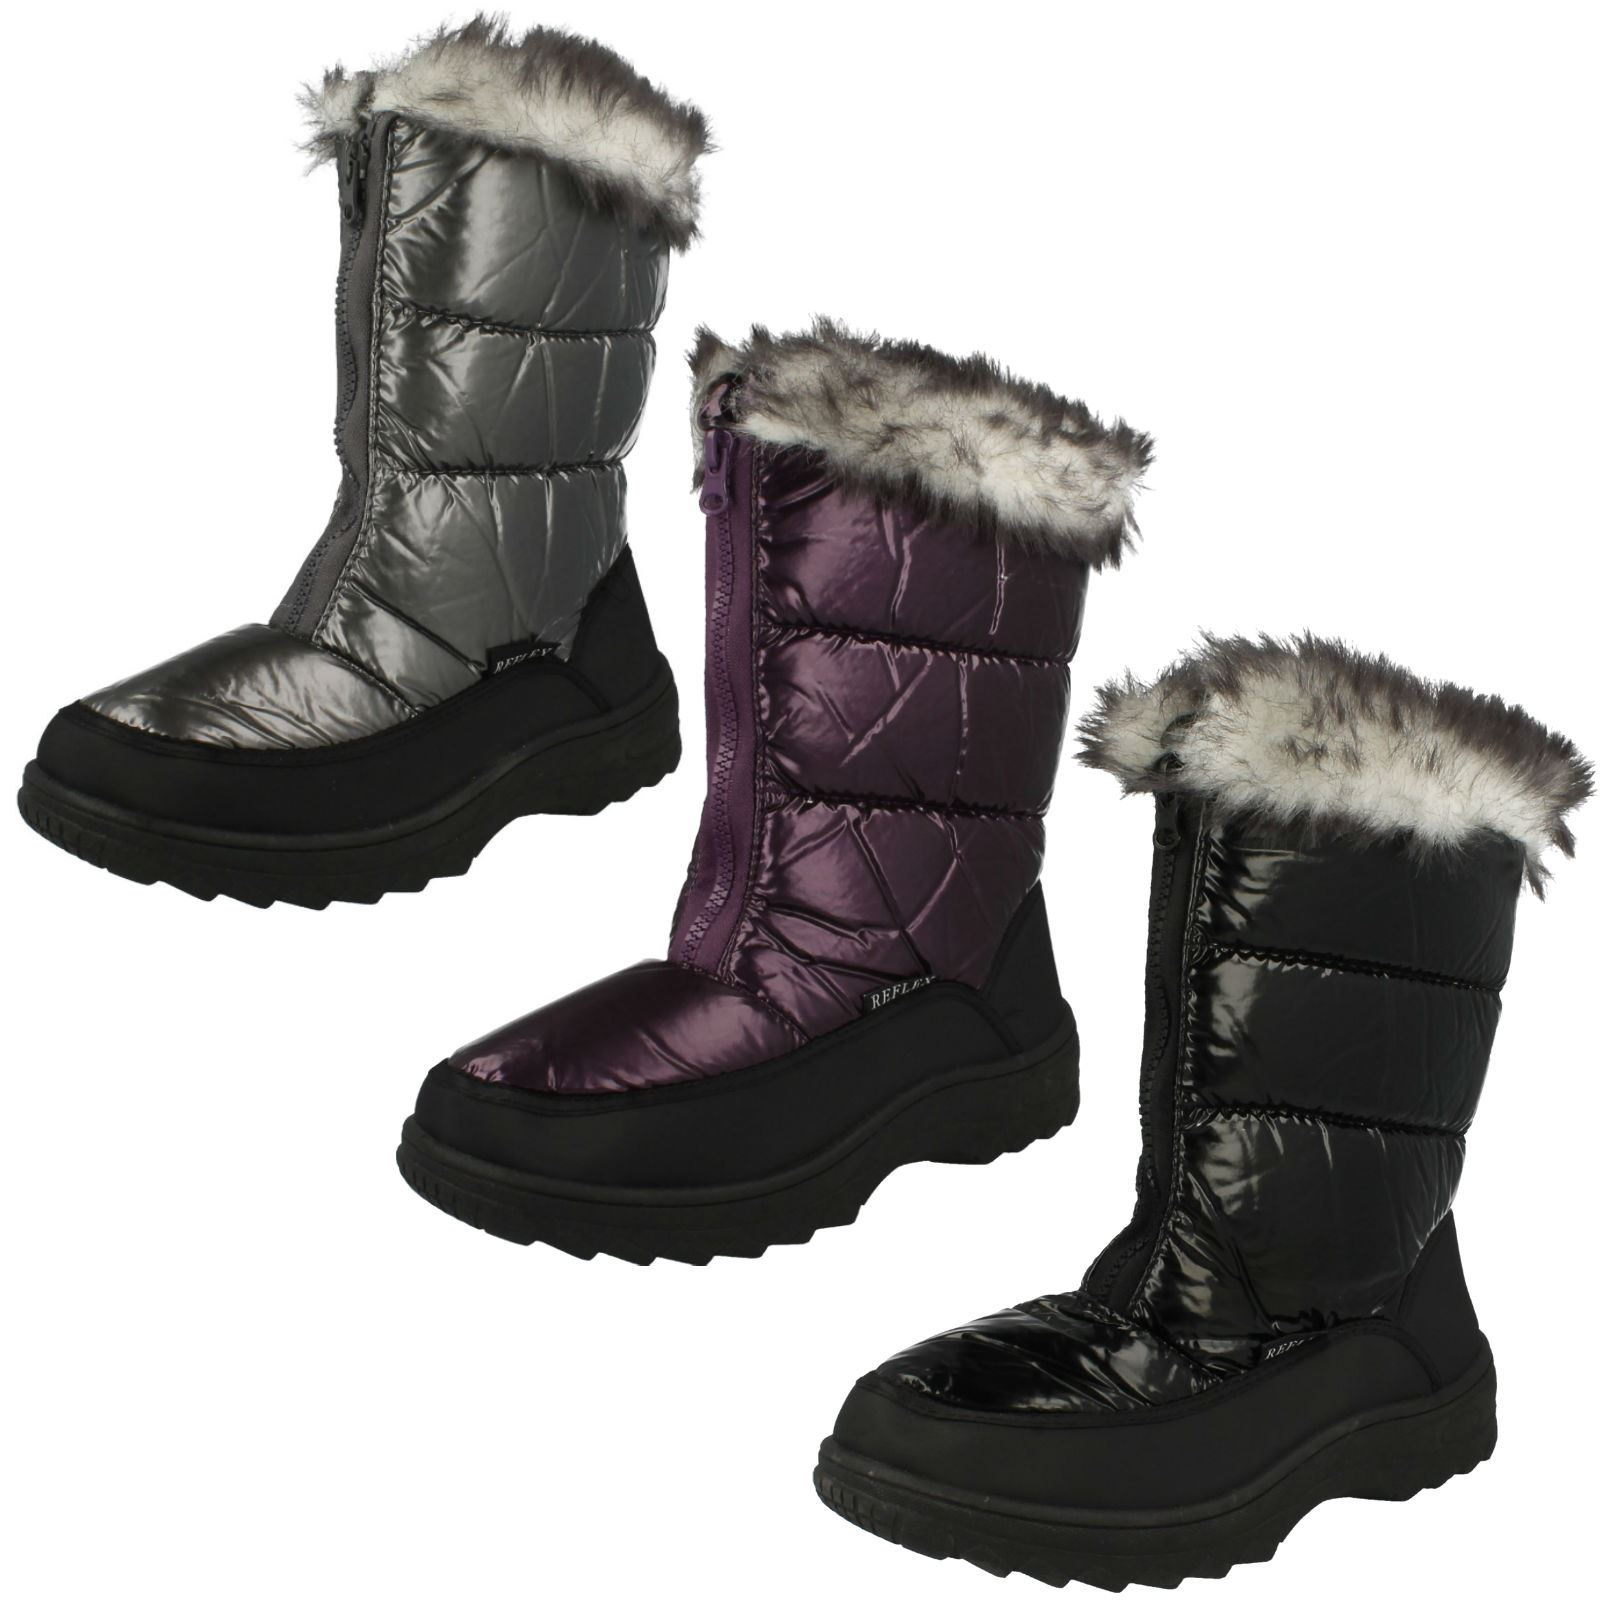 Ladies Fur Topped Snow Boots Reflex for